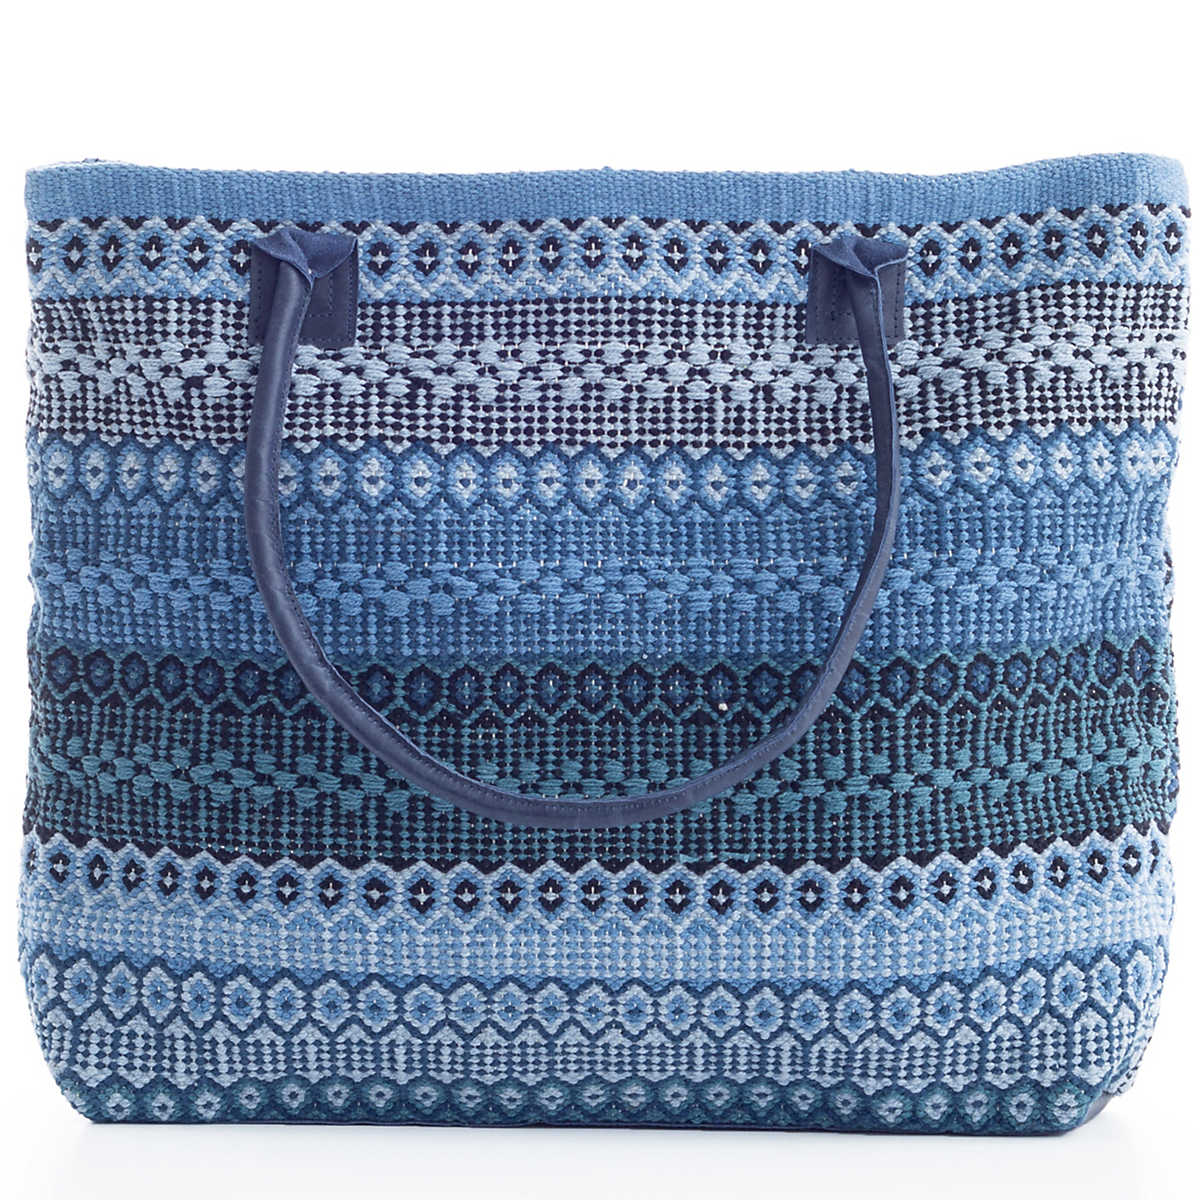 Gypsy Stripe Denim Navy Woven Cotton Tote Bag The Outlet